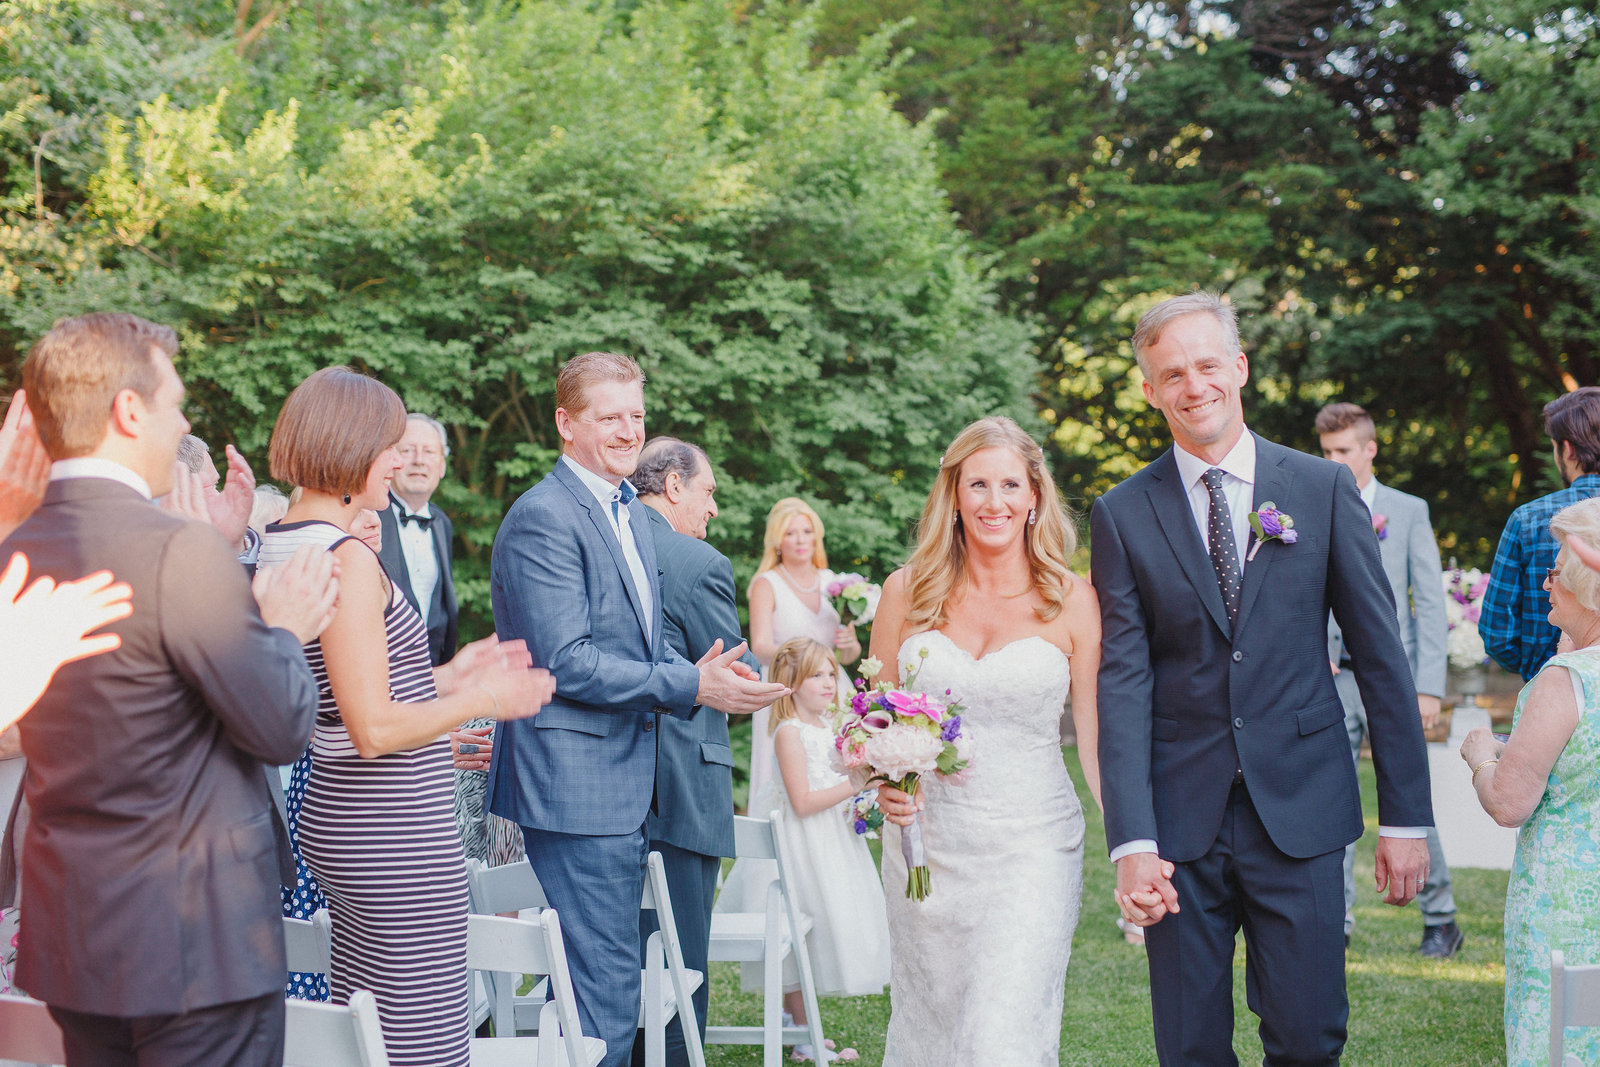 CraigAndSamanthaMarried_062416_WeeThreeSparrowsPhotography_0690